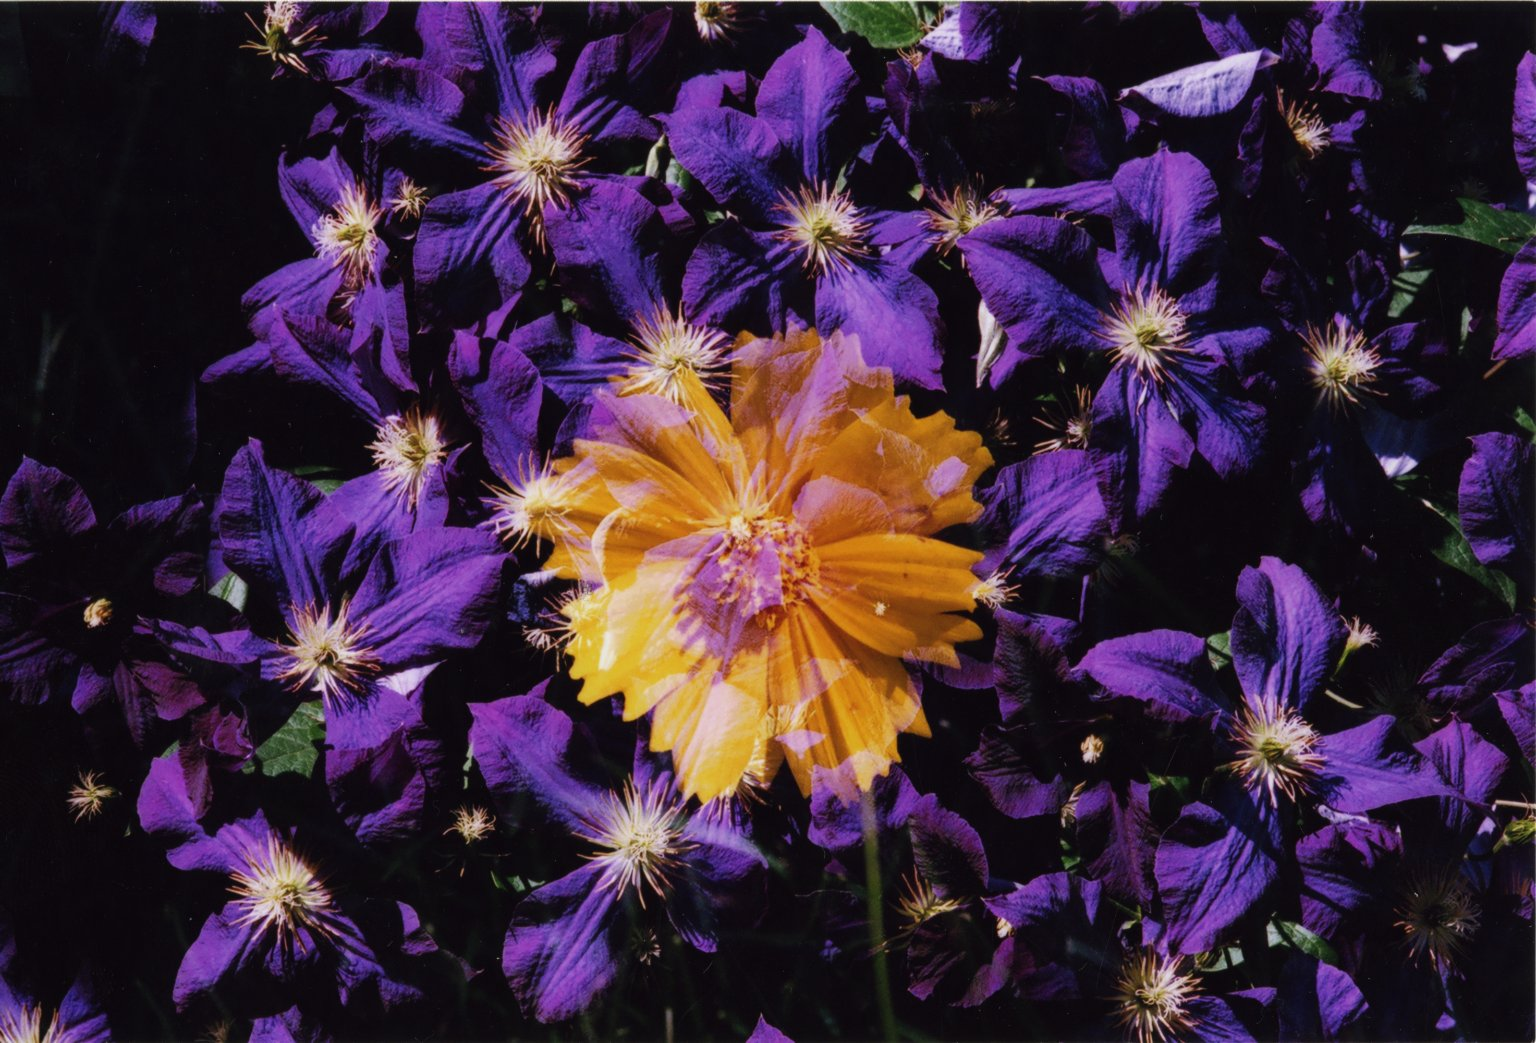 Double Exposure - Orange flower over purple flowers